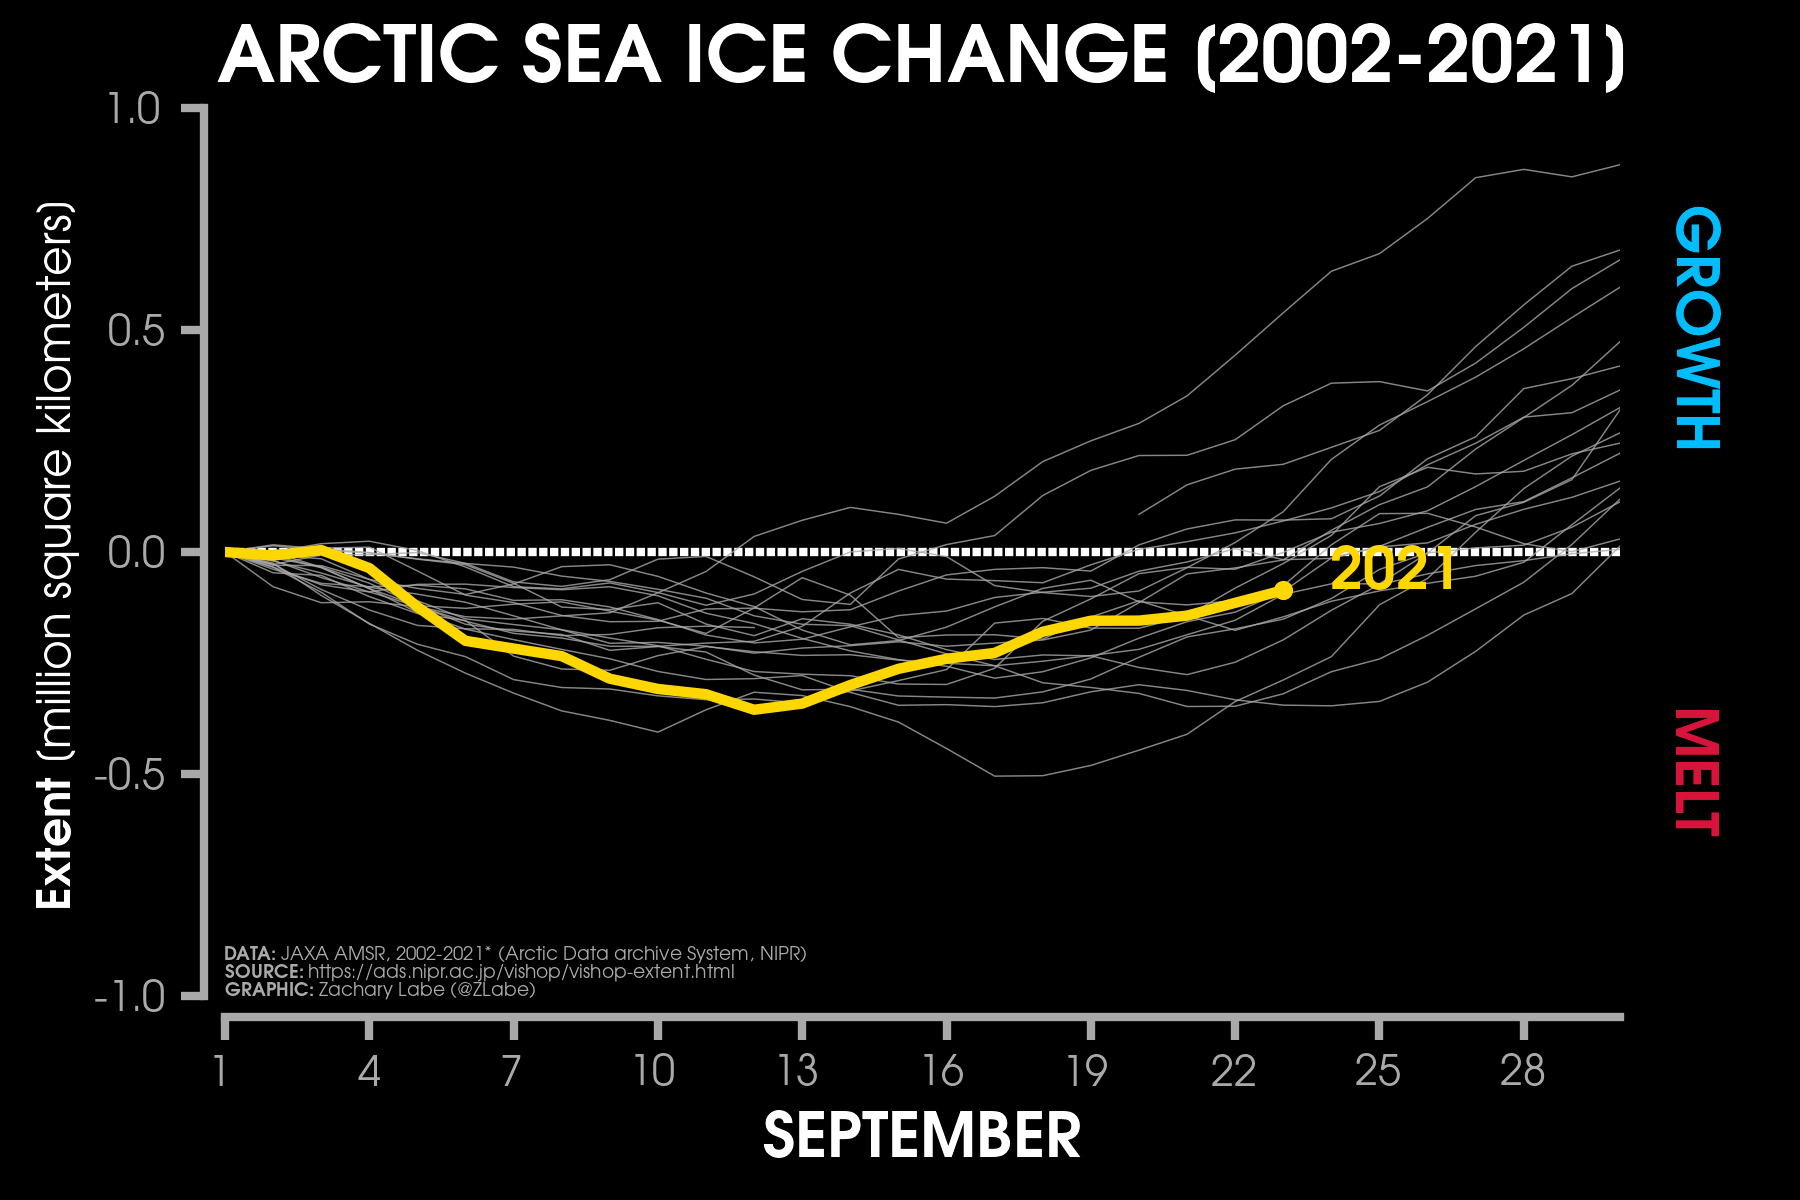 arctic-ocean-sea-ice-daily-extent-change-september-2021